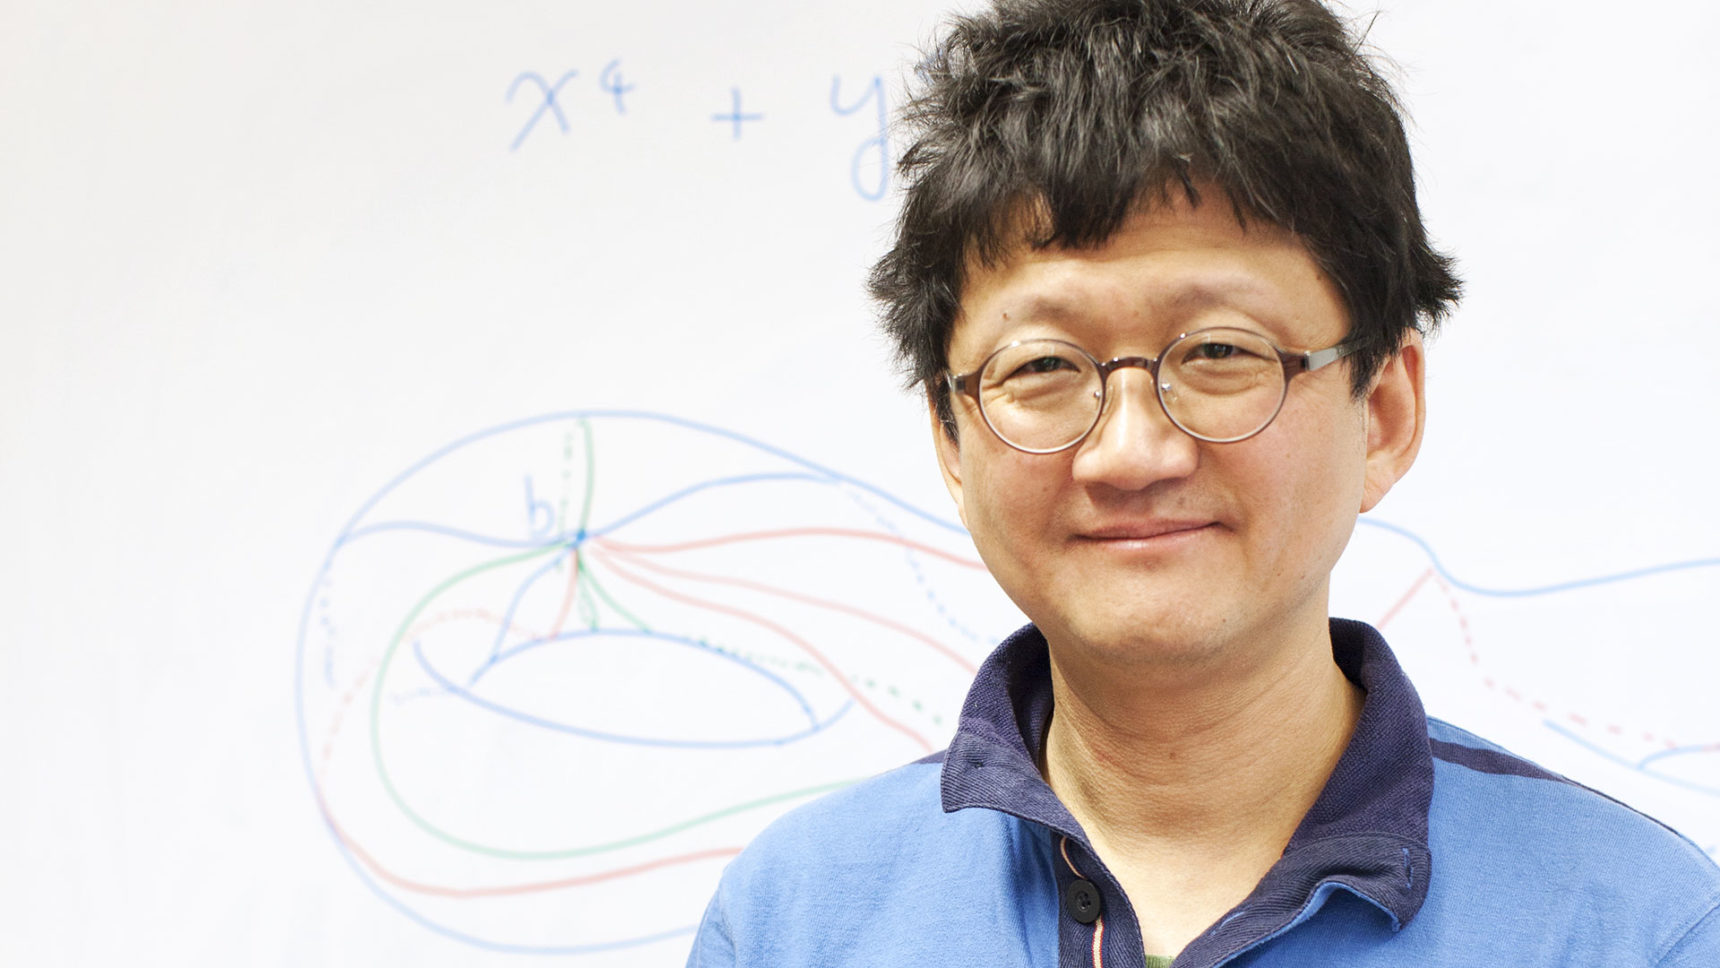 Video: Minhyong Kim wanted to make sure he had concrete results in number theory before he admitted that his ideas were inspired by physics.